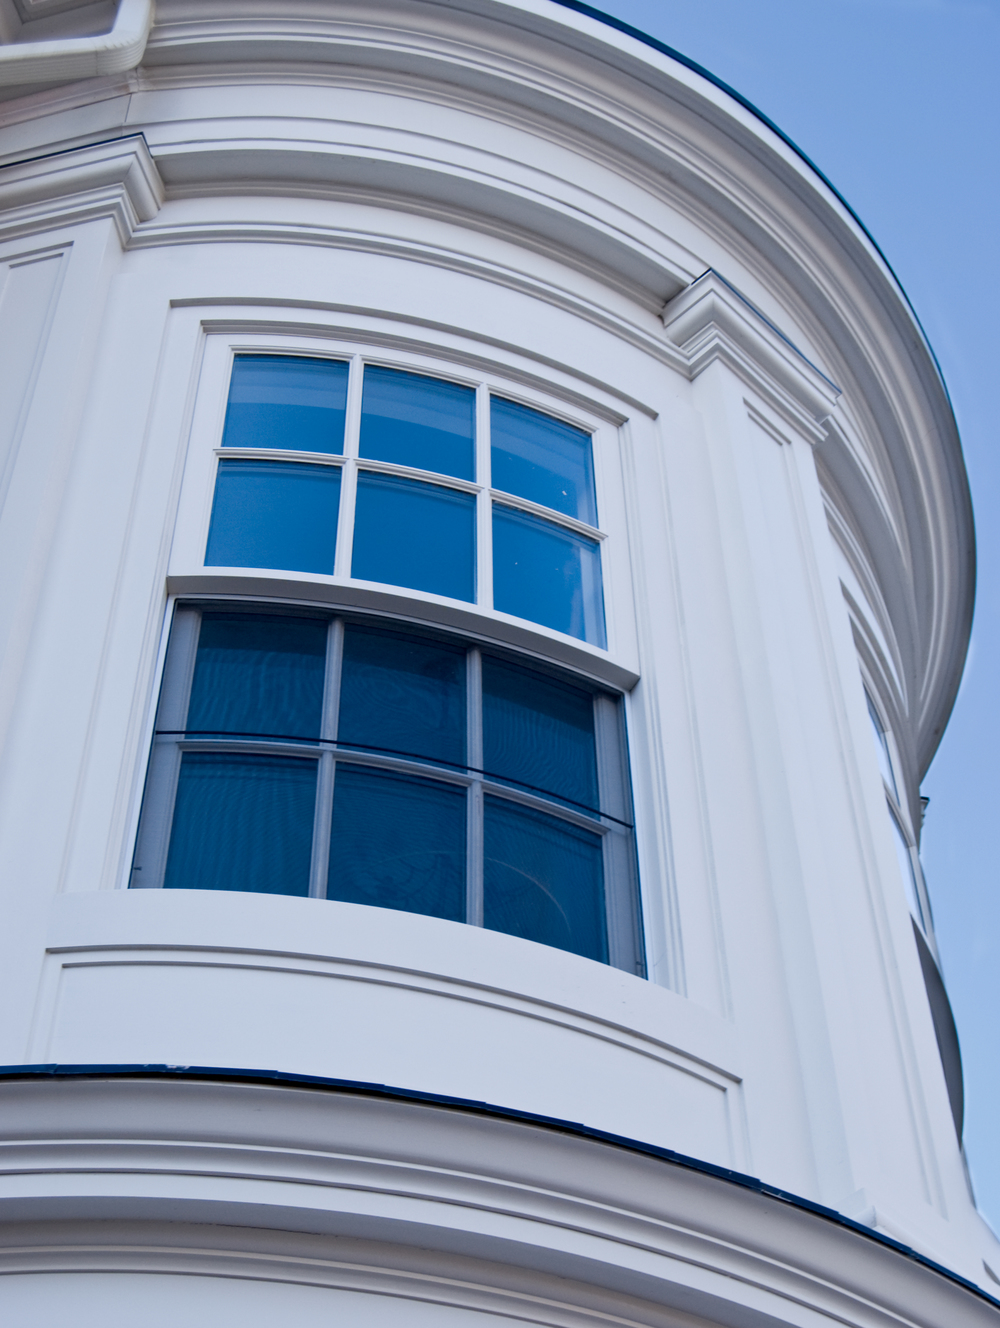 20100128-exterior round window up close-2.jpg